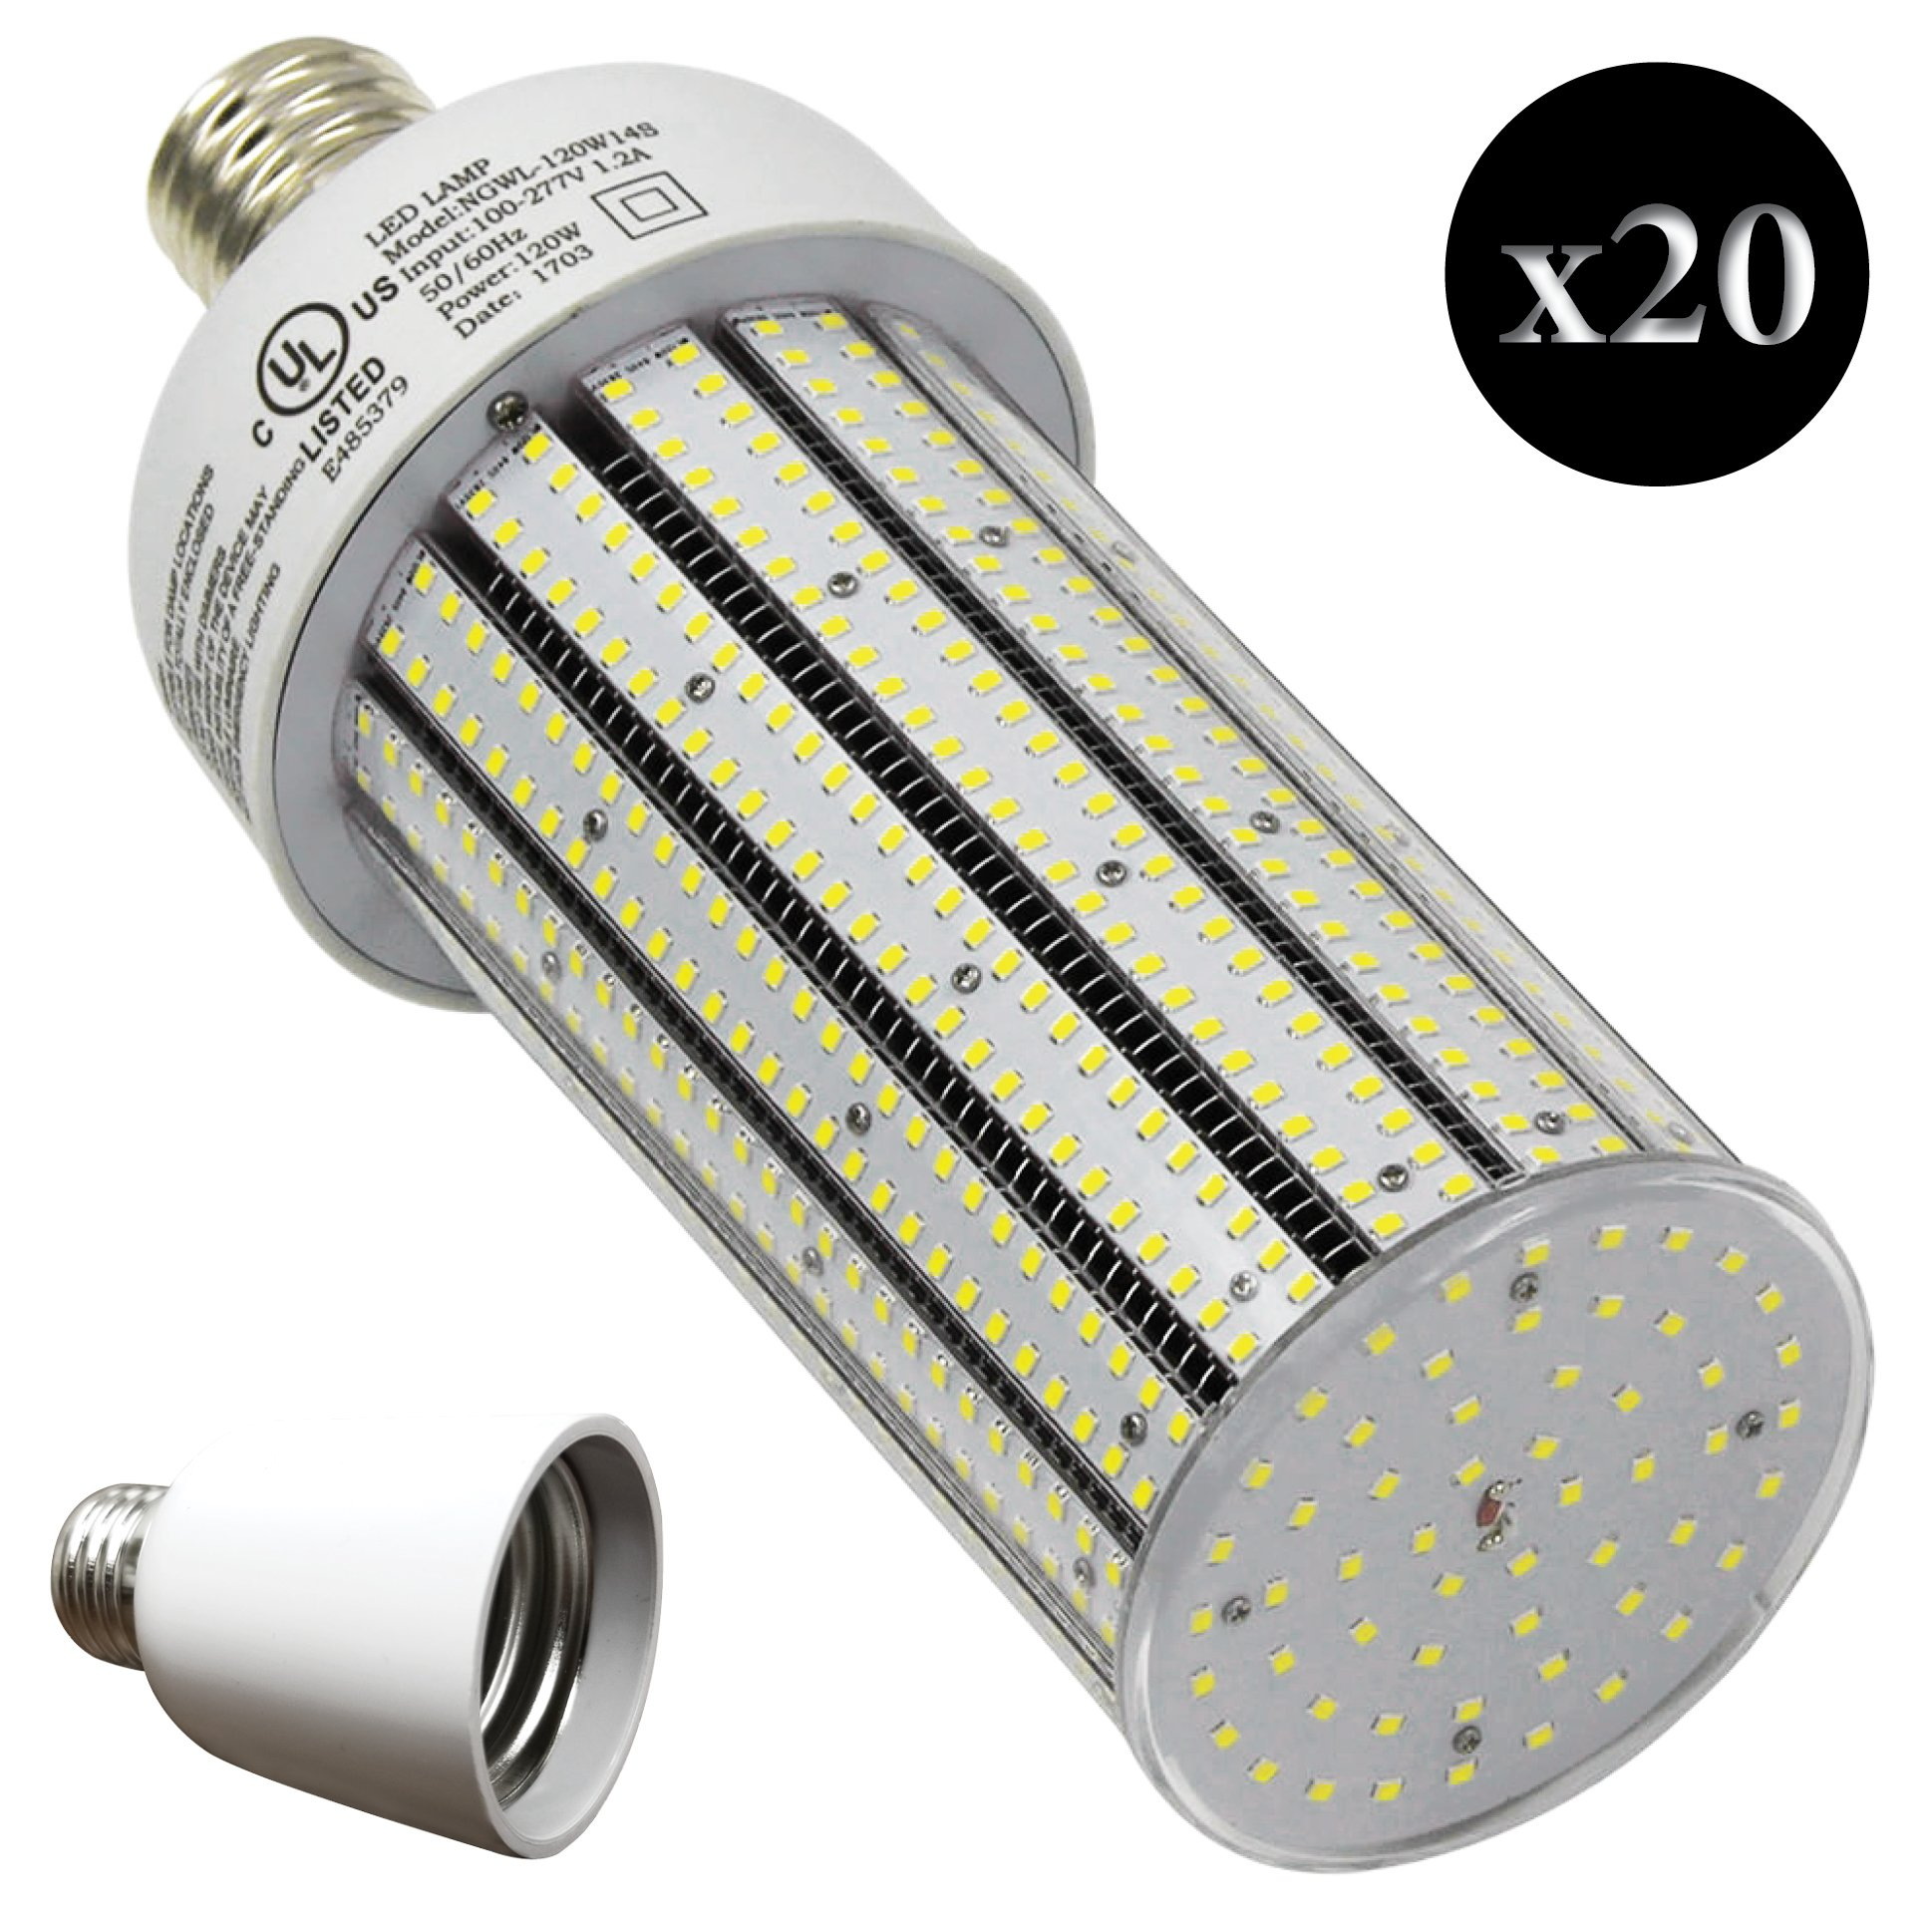 QTY 20 CC120-39 + 20 Adapters LED HIGH BAY LED PARKING LOT LIGHT E39 6500K WHITE 120W (EQUIVALENT TO 720W) by VLYNX